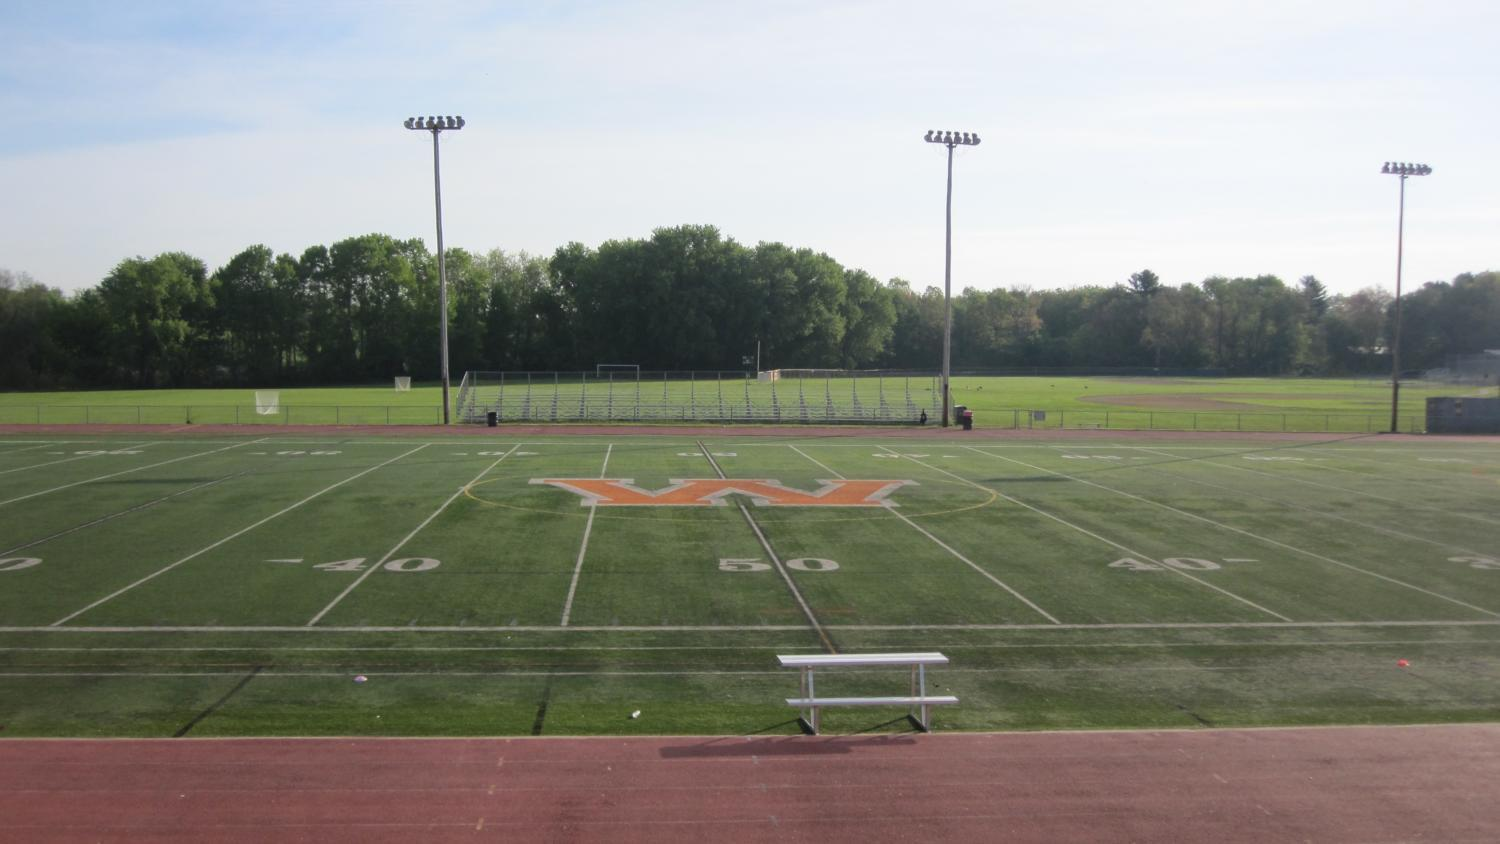 """Every athletic field at Wayland High School will be either renovated, or repositioned in the coming years. """"The track is at the end of its useful life, the turf is approaching that timetable quickly, I think we have bleachers and a press box that have reached the end of their useful lives as well,"""" Rollins said. """"The tennis courts are also in poor condition. So this is really of the essence."""""""